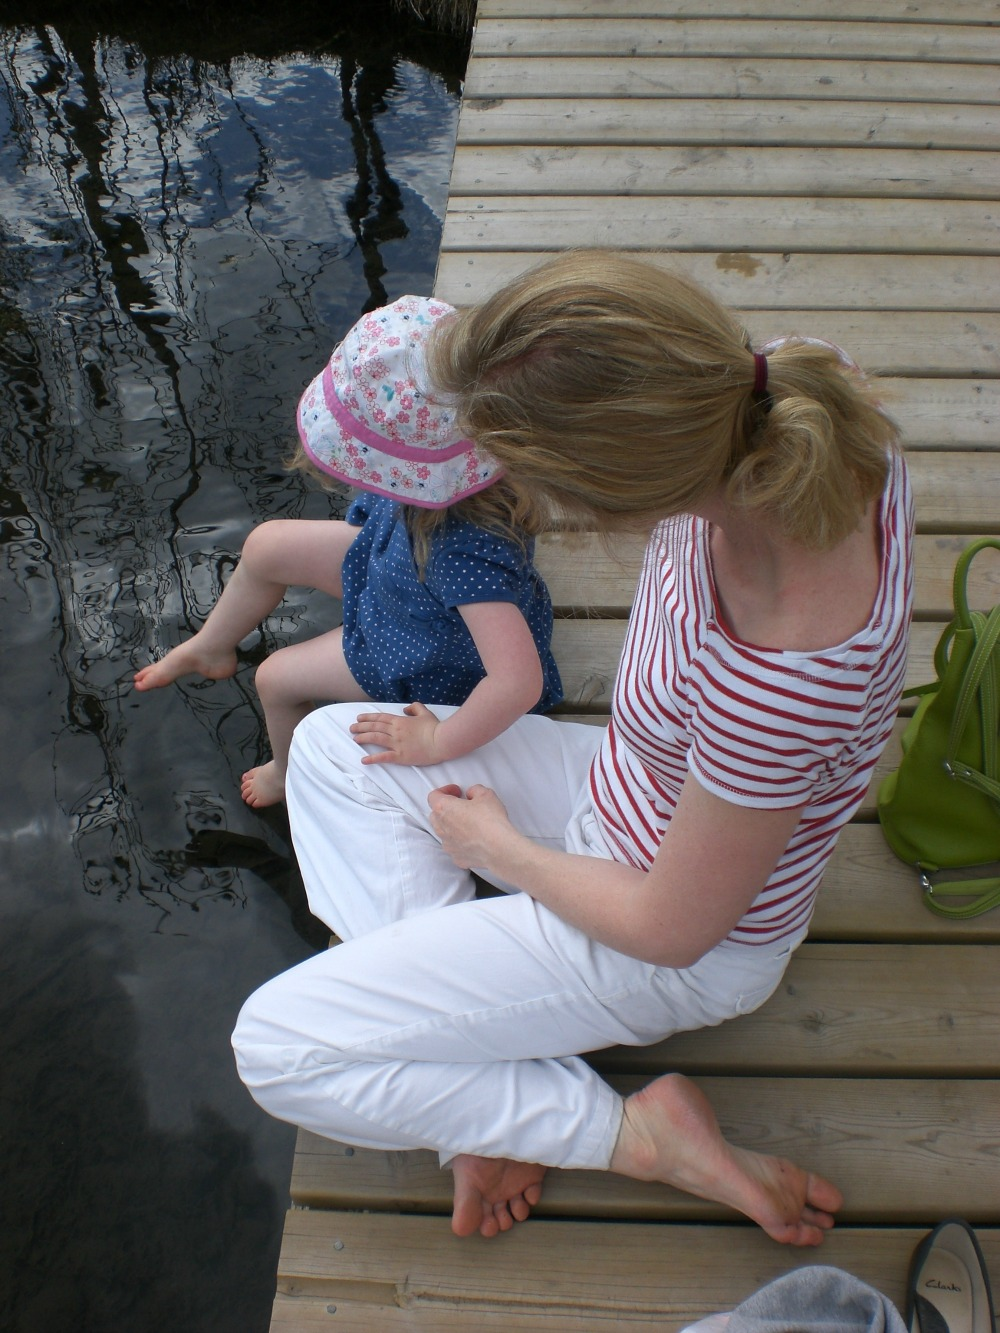 mom and daughter on a dock